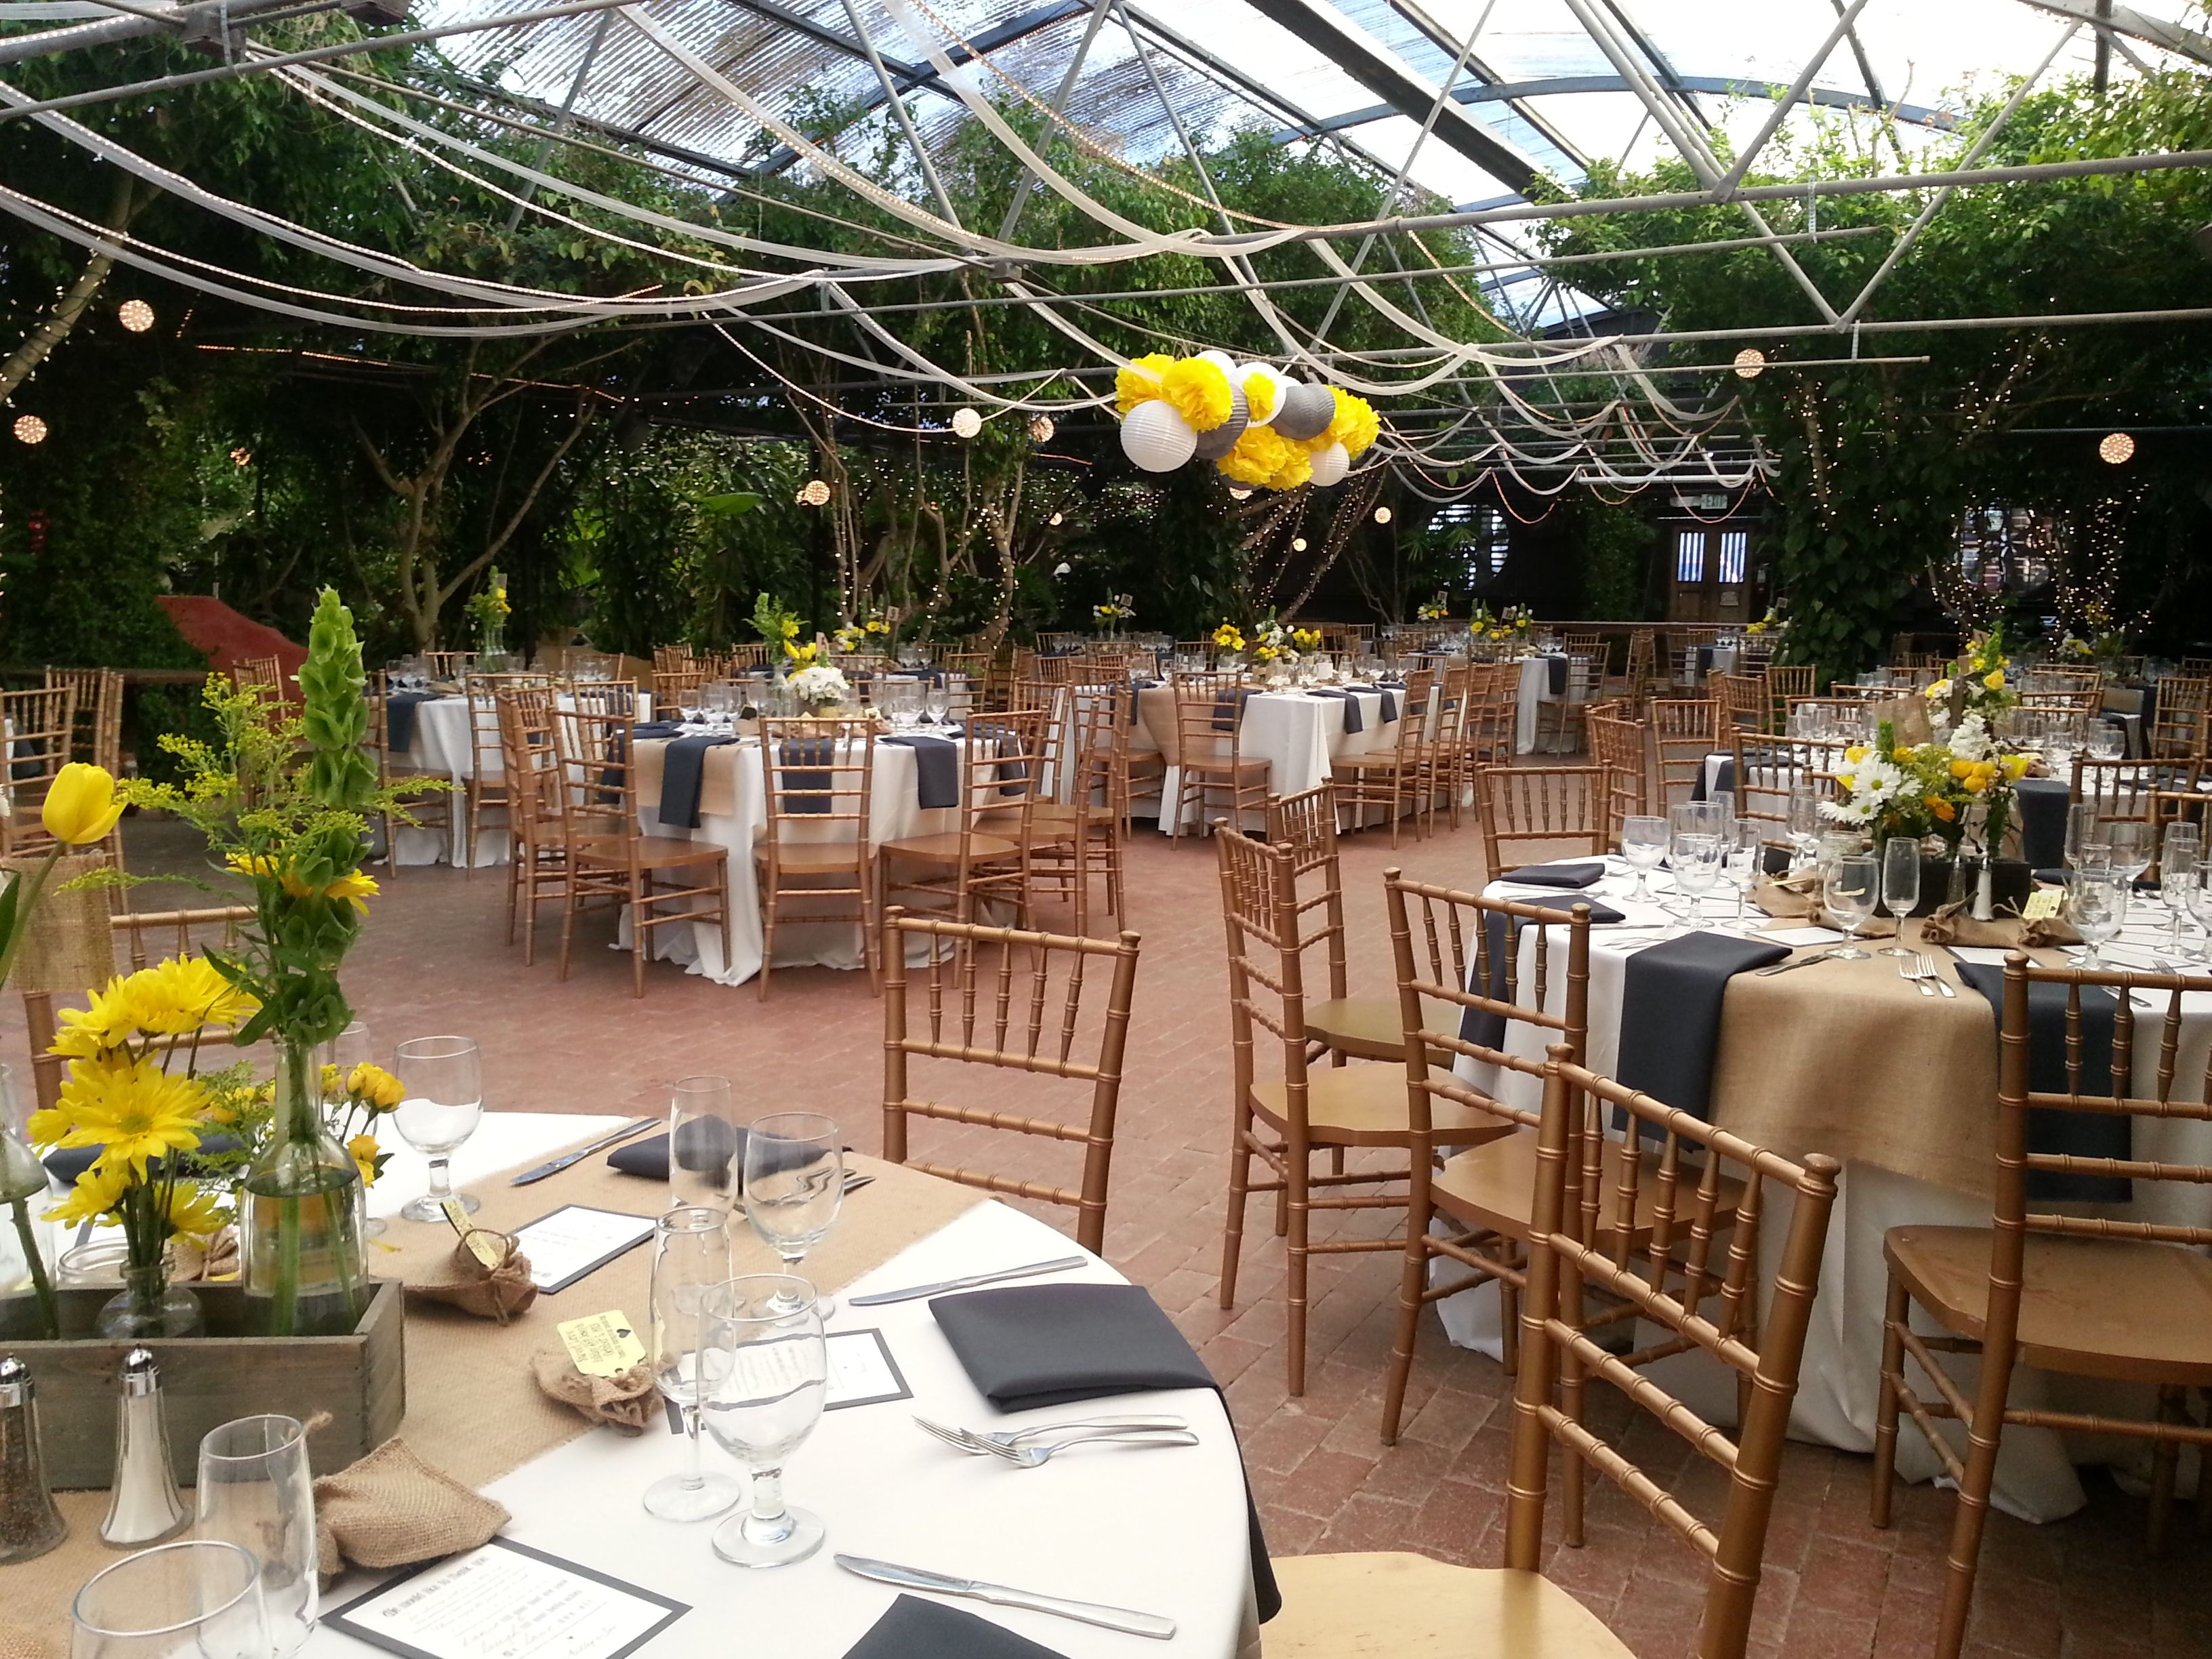 Find Wedding Venues In Az At Boojum Tree Hidden Garden And Whispering Ranch